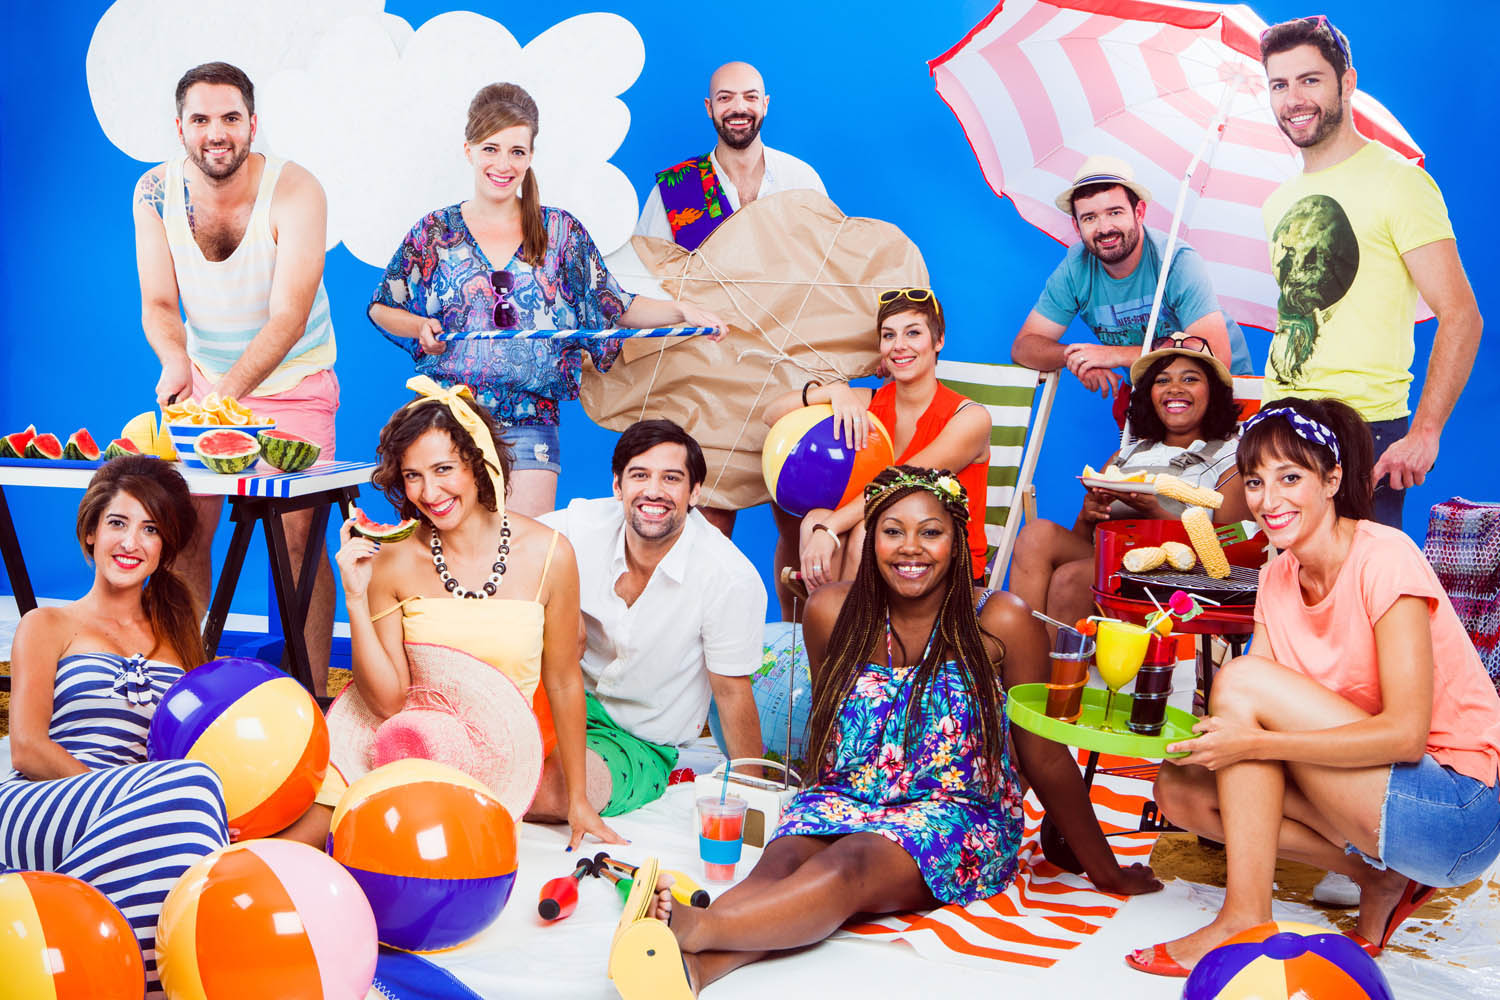 A beach barbeque themed group shot, also for Expedia.